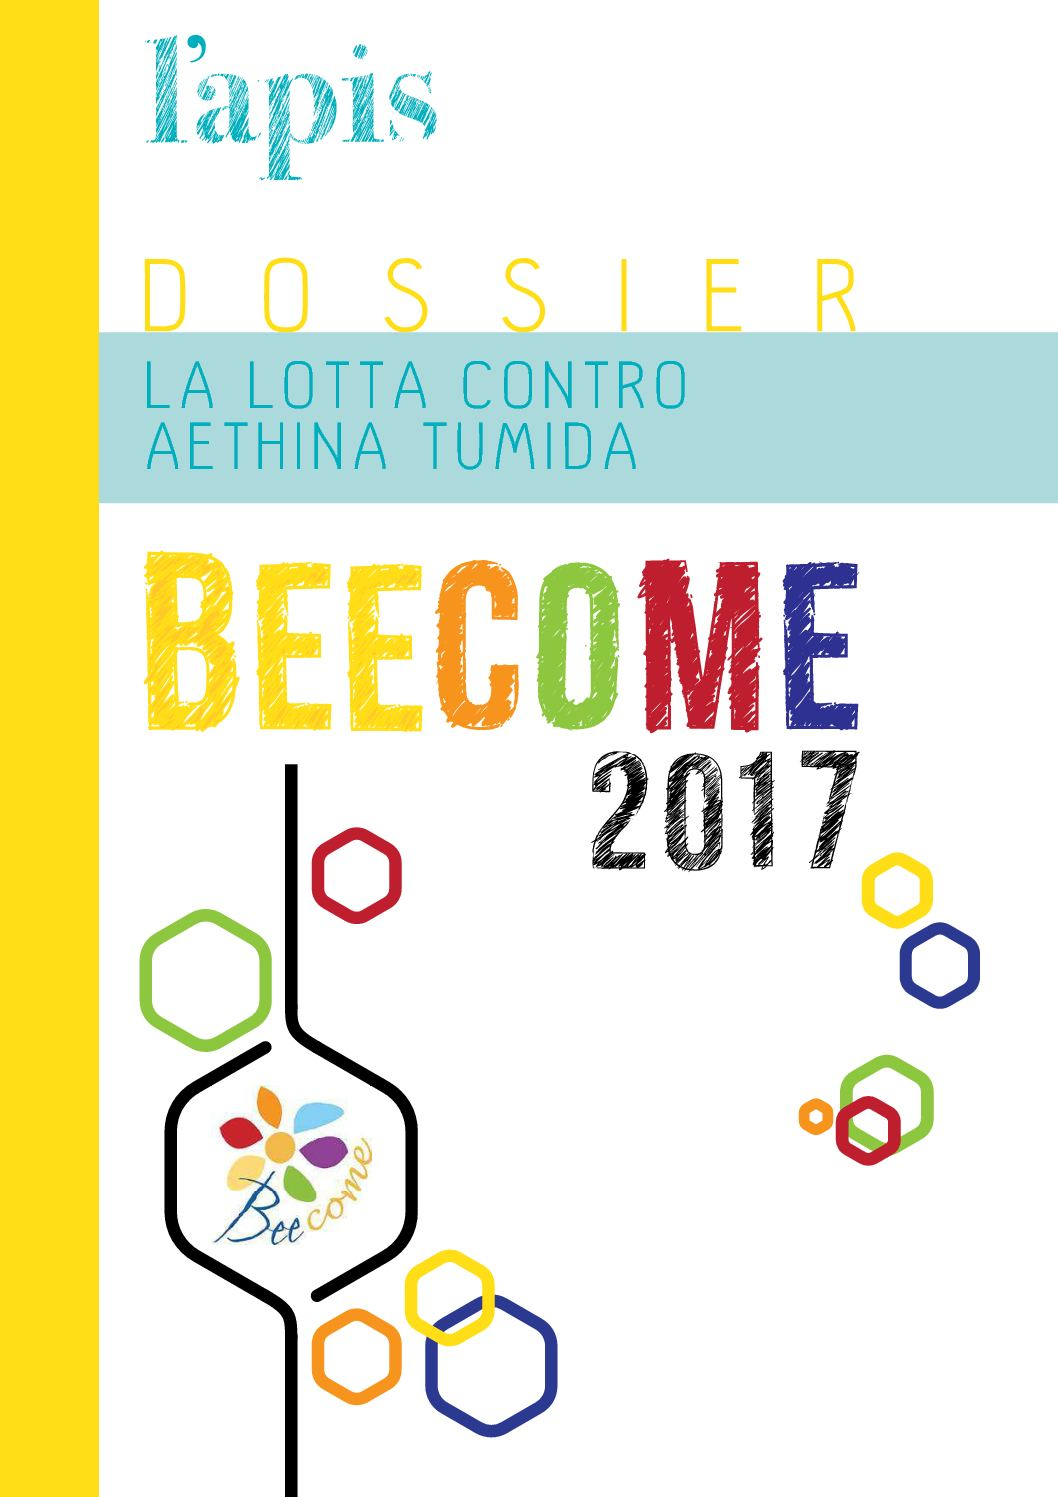 Dossier 01-17 Beecome